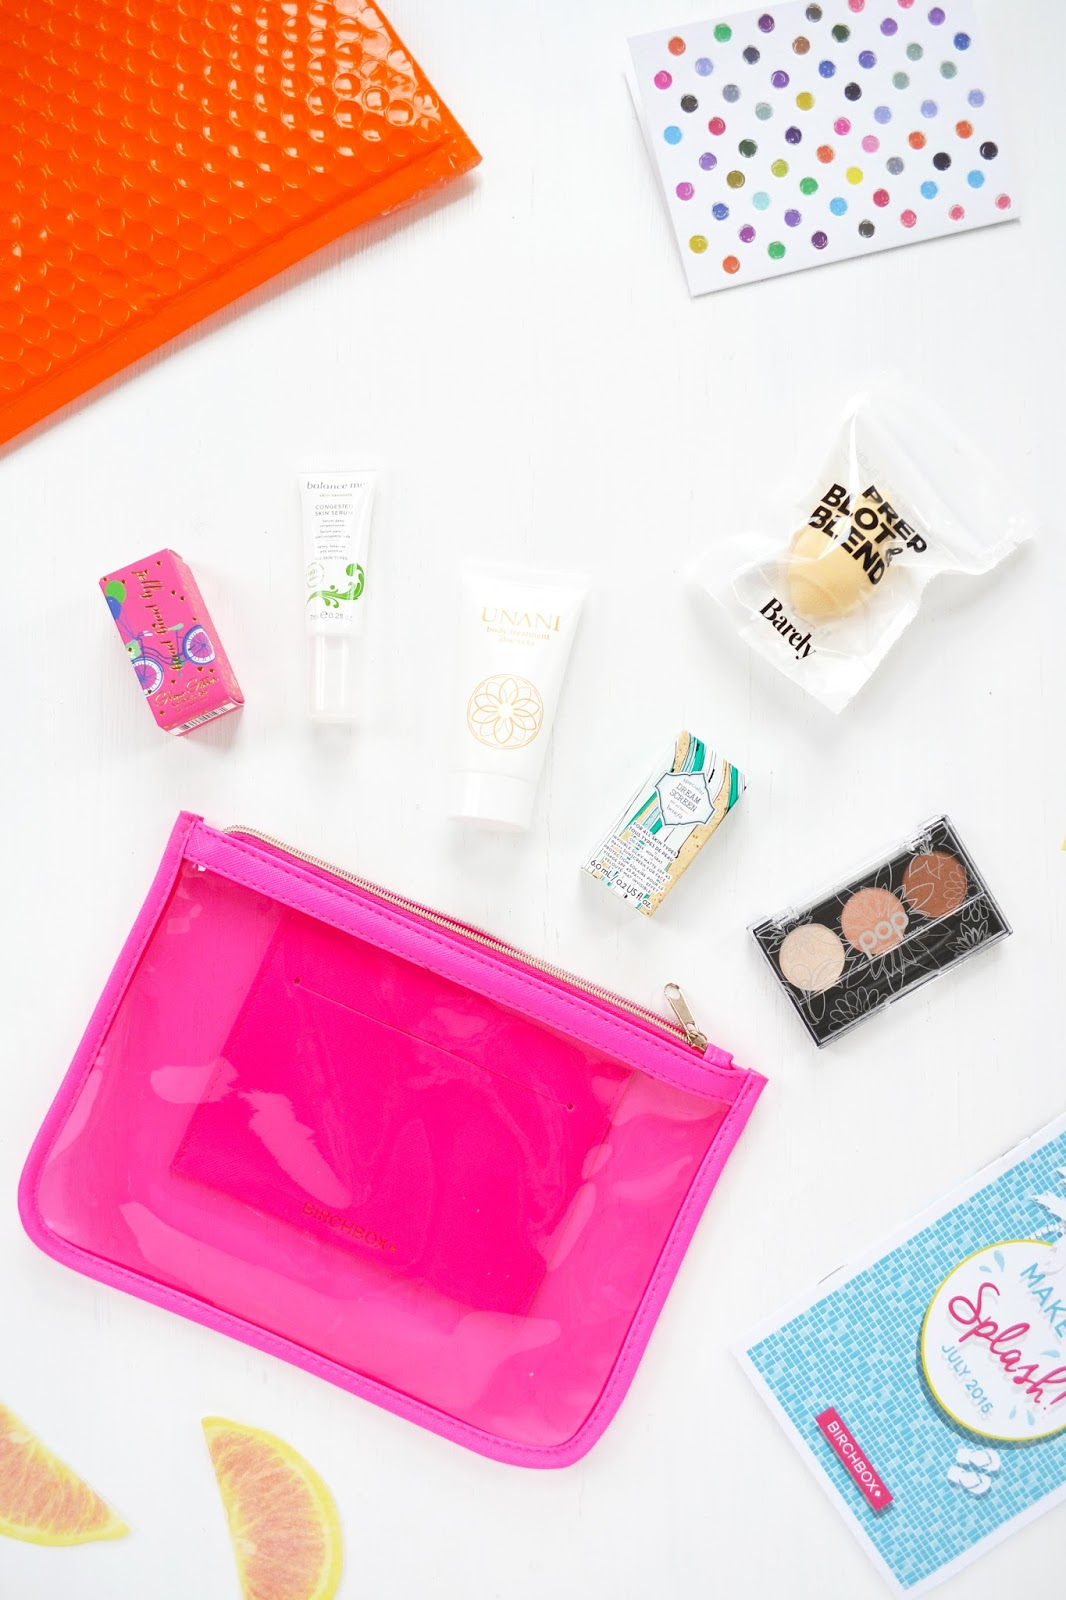 BIRCHBAG Birchbox July 2015